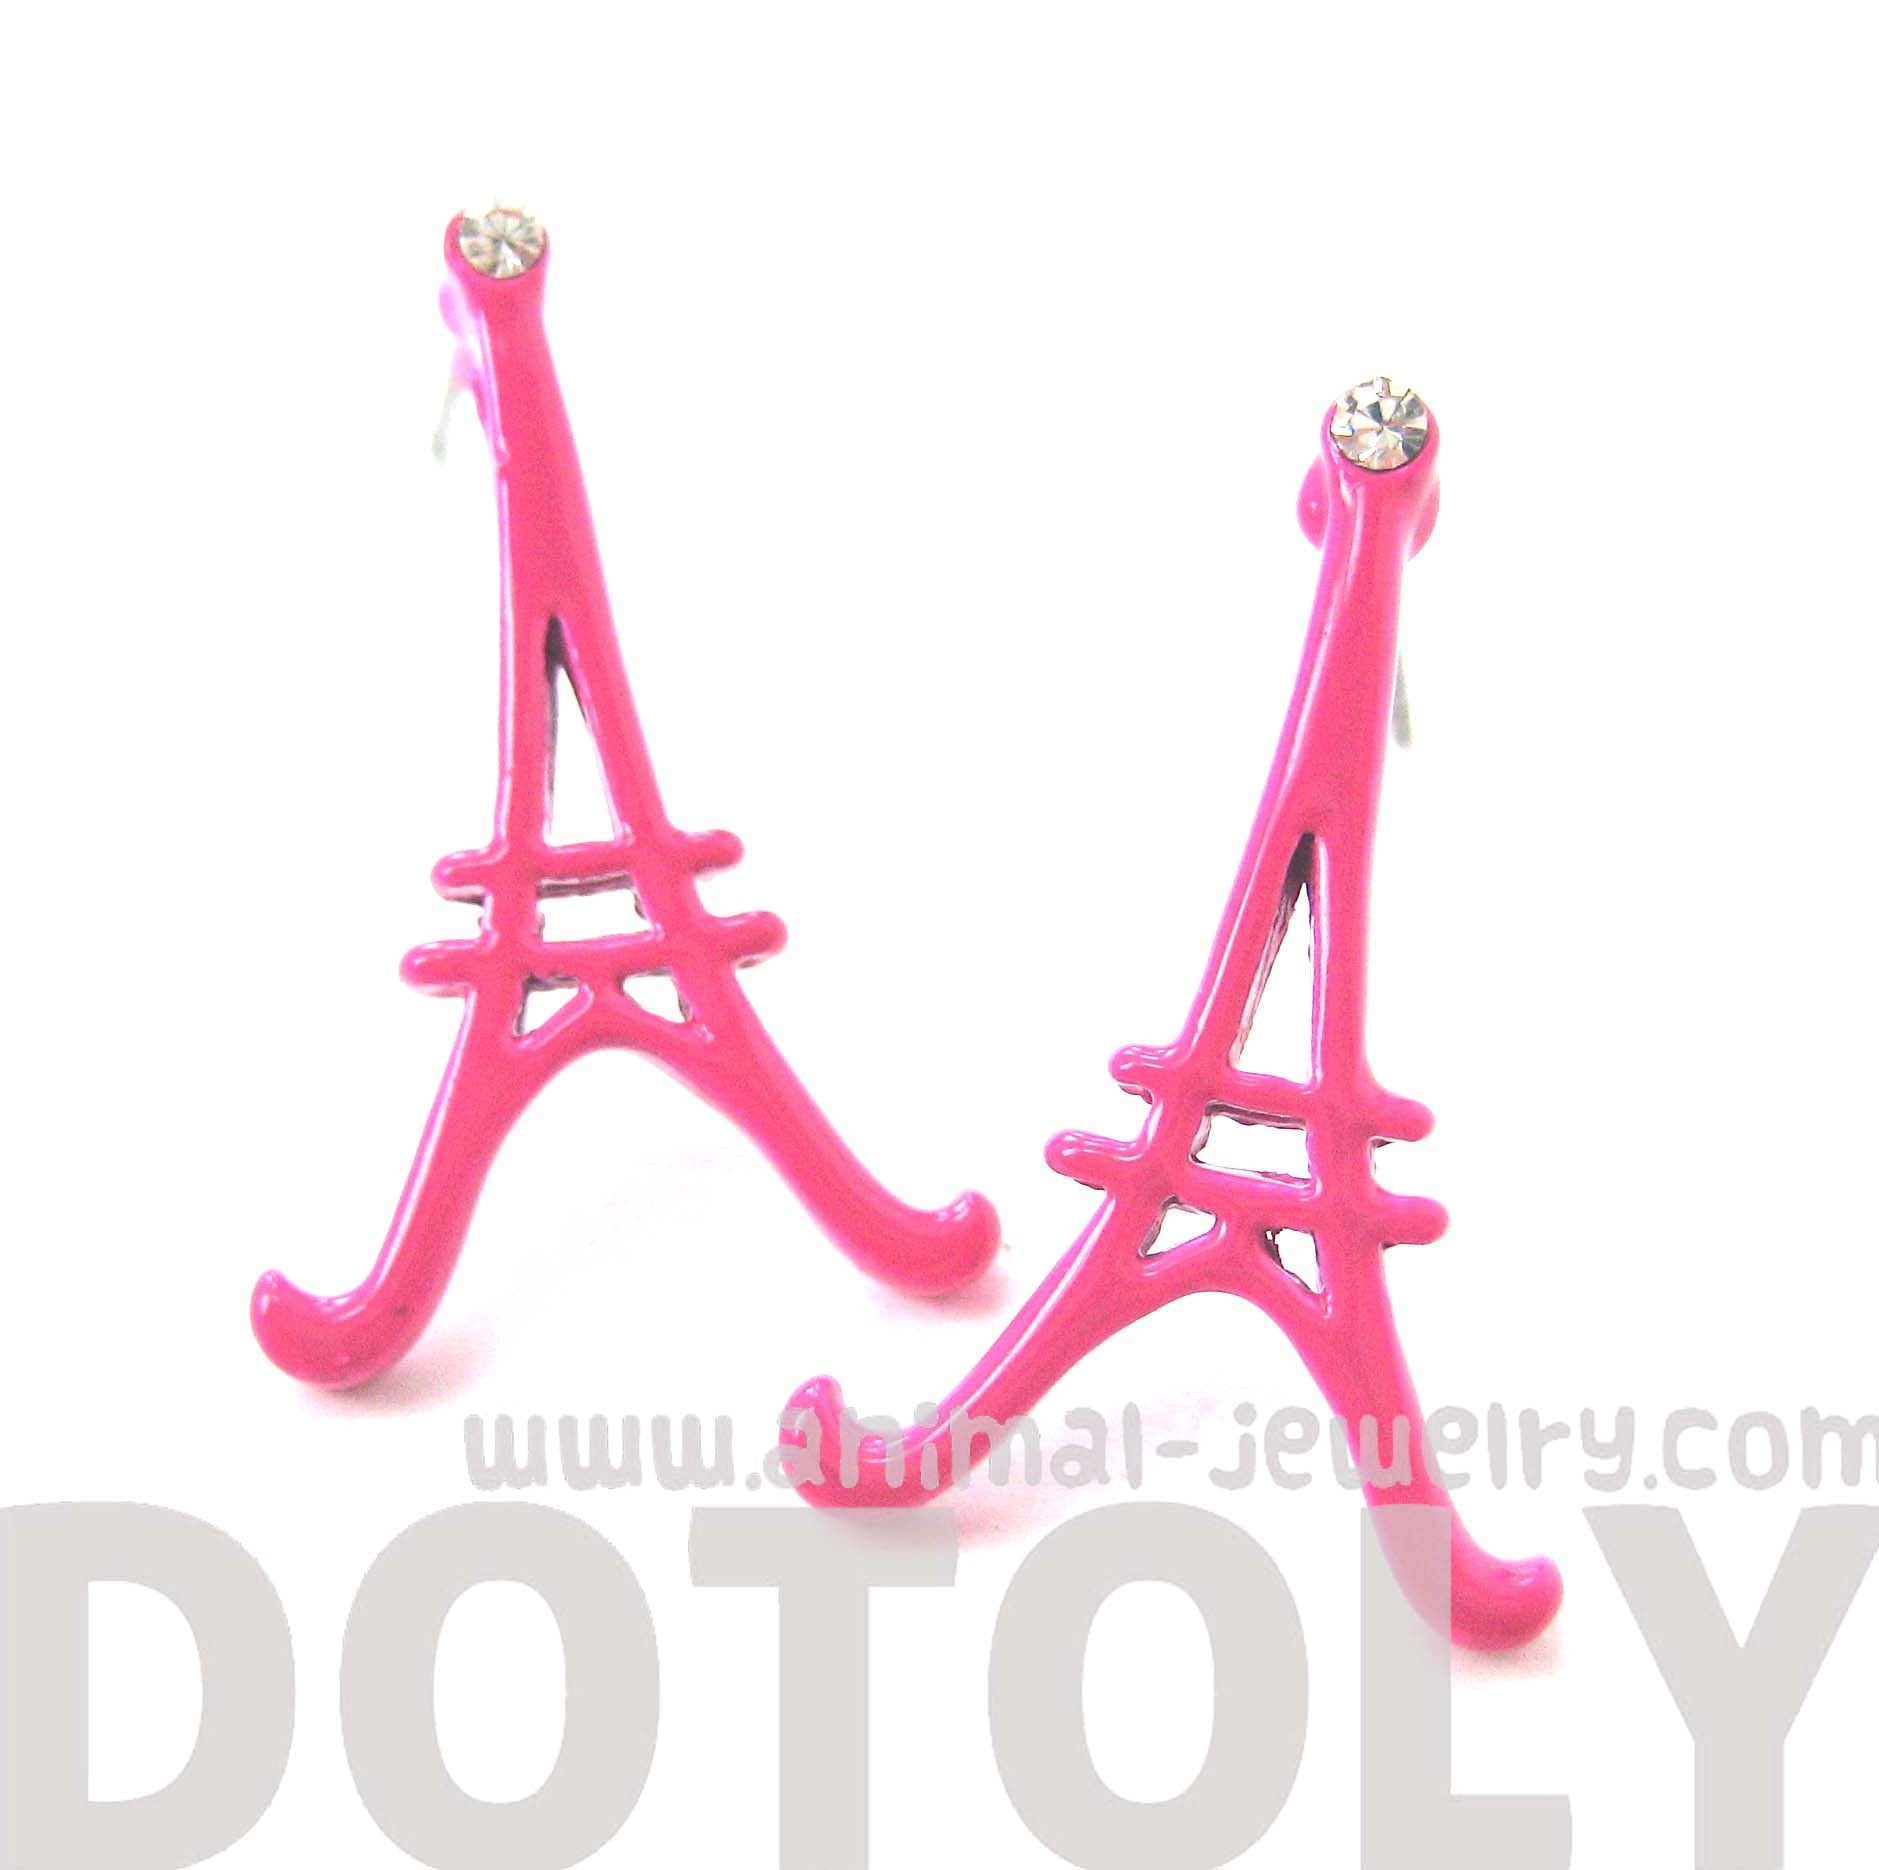 large-eiffel-tower-shaped-paris-france-travel-stud-earrings-in-pink